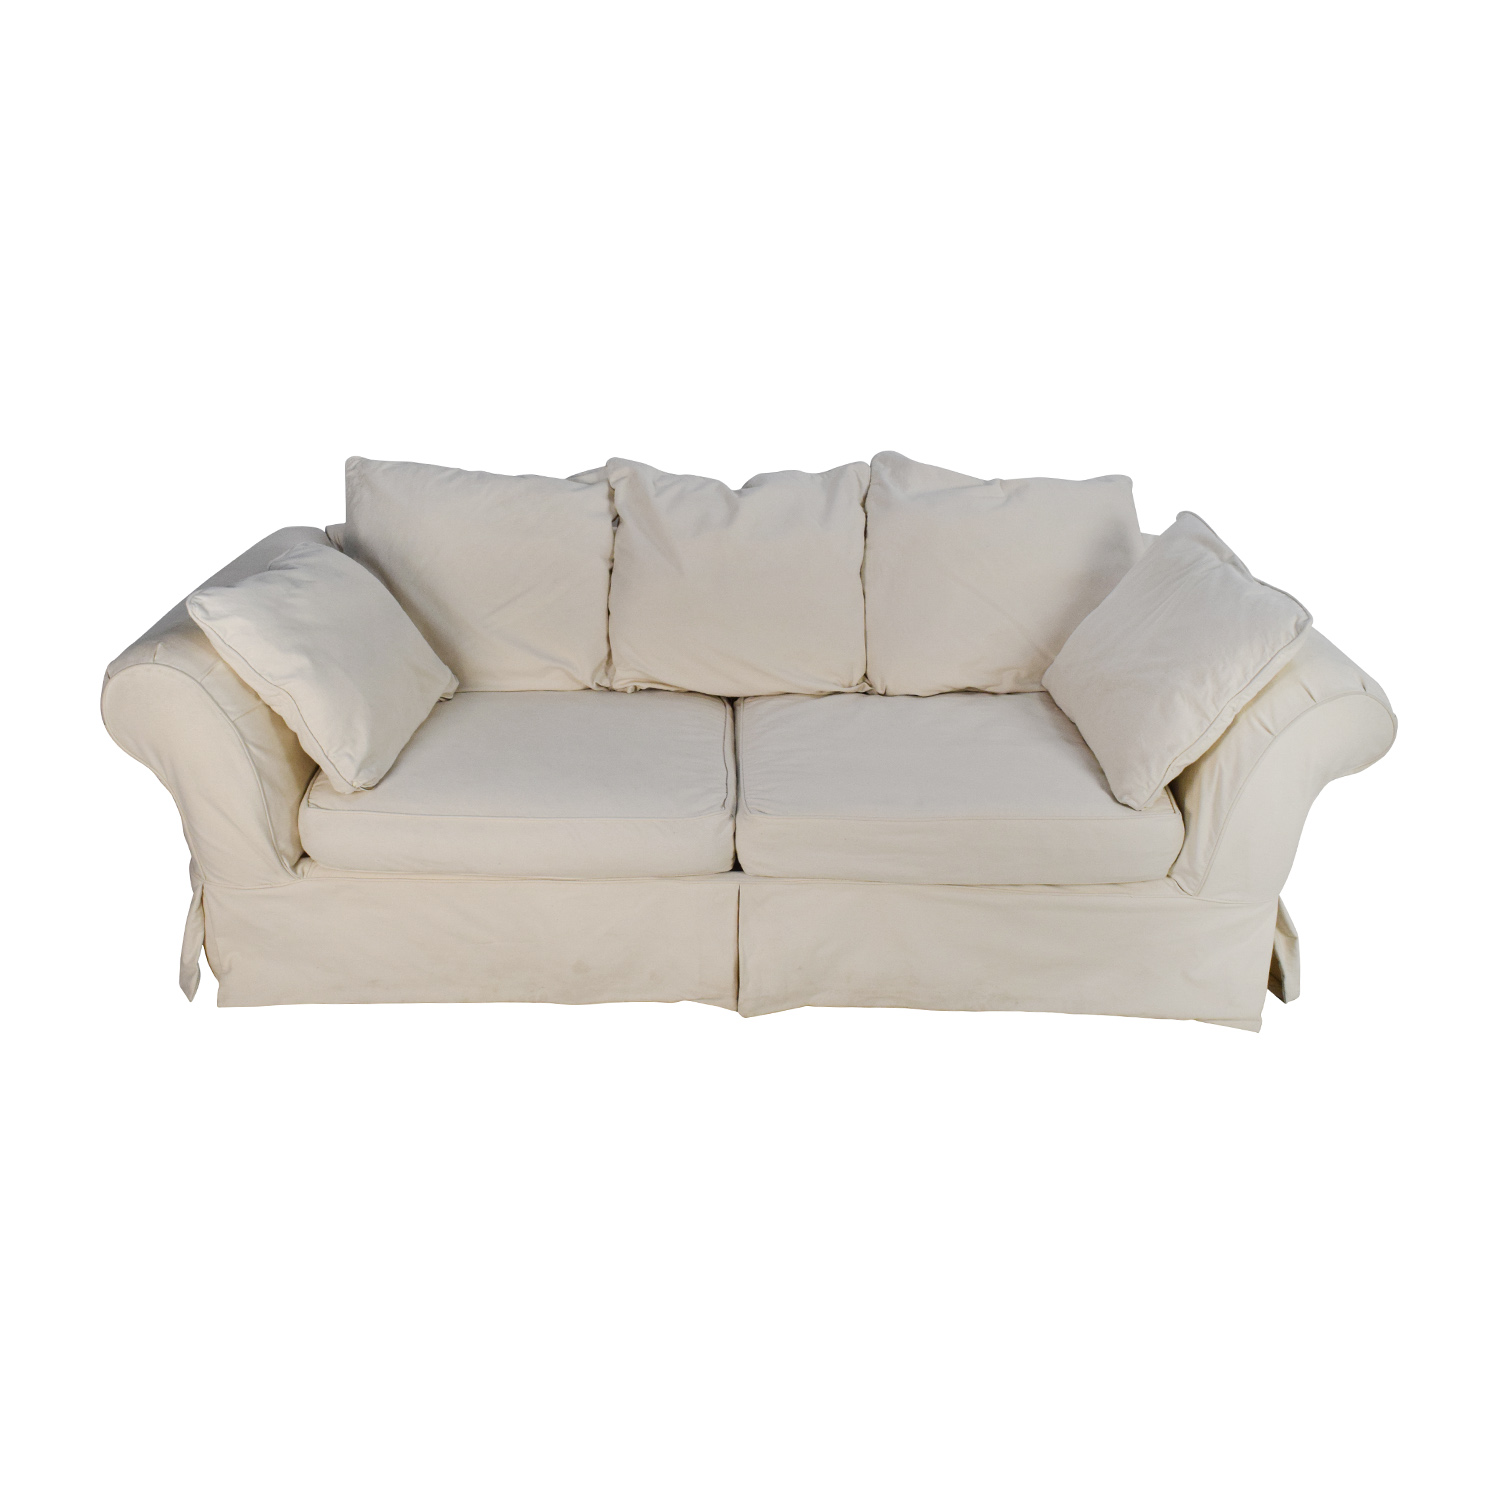 shop Jennifer Convertibles Linda Slipcovered Sofa Jennifer Convertibles